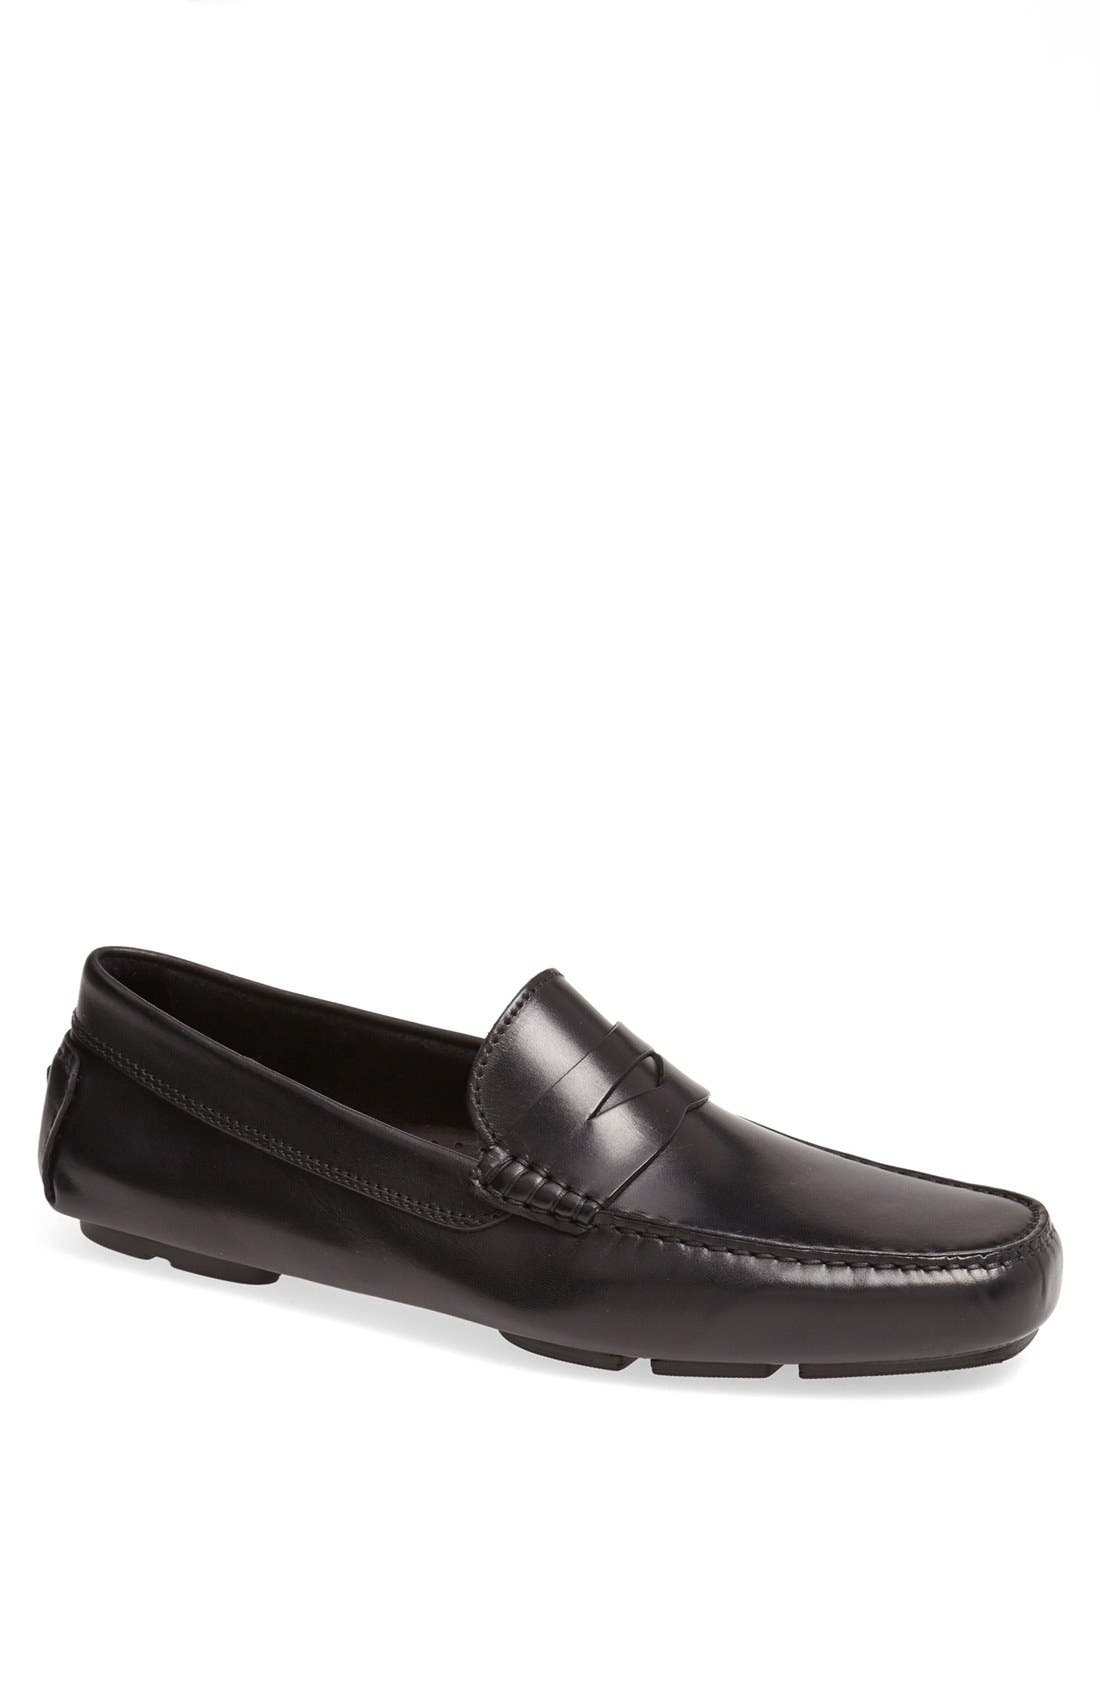 to boot new york driving shoe nordstrom